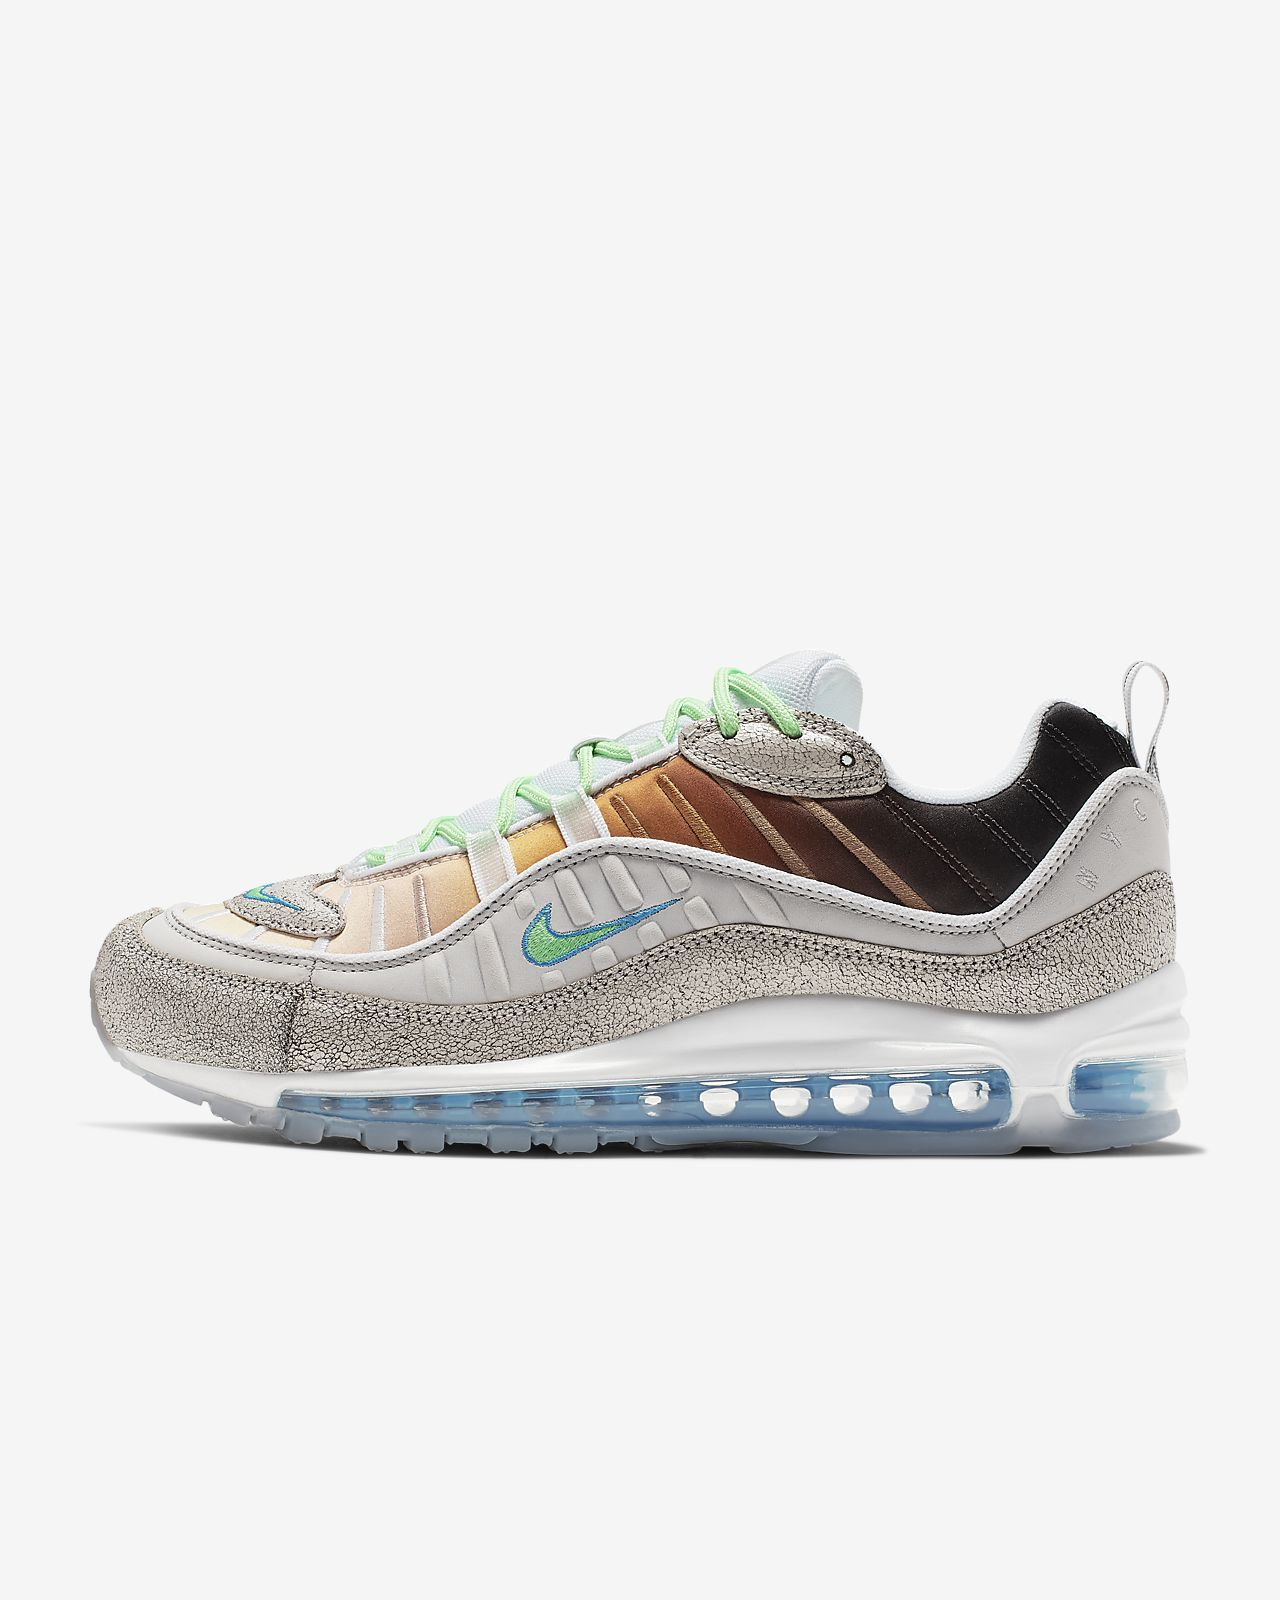 Nike Air Max 98 On Air Gabrielle Serrano Shoe